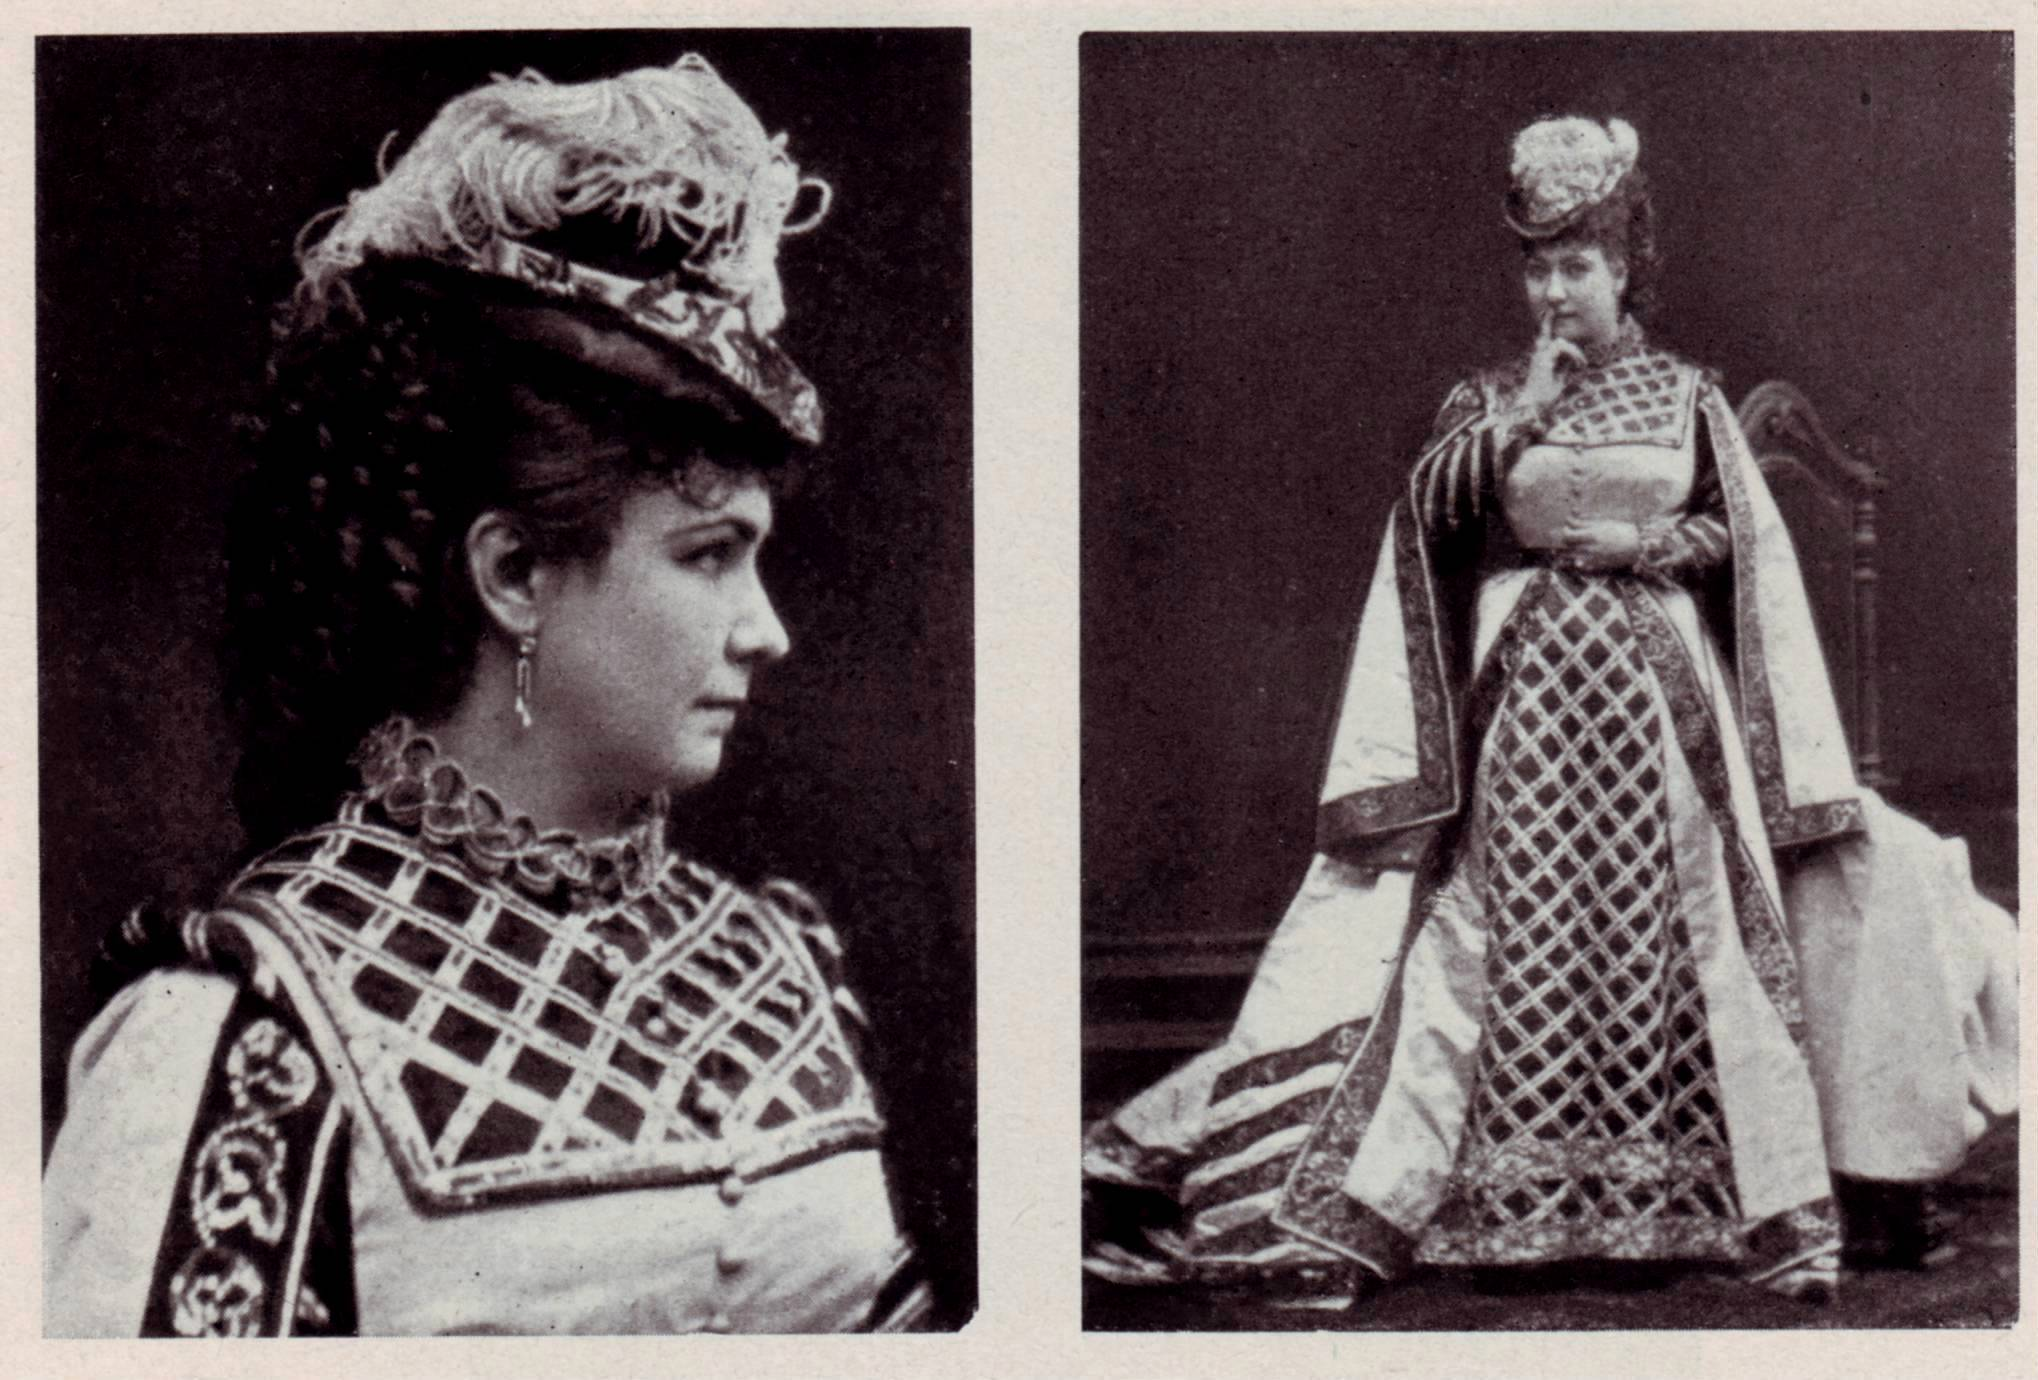 Marie Geistinger as Boulotte. in Vienna.